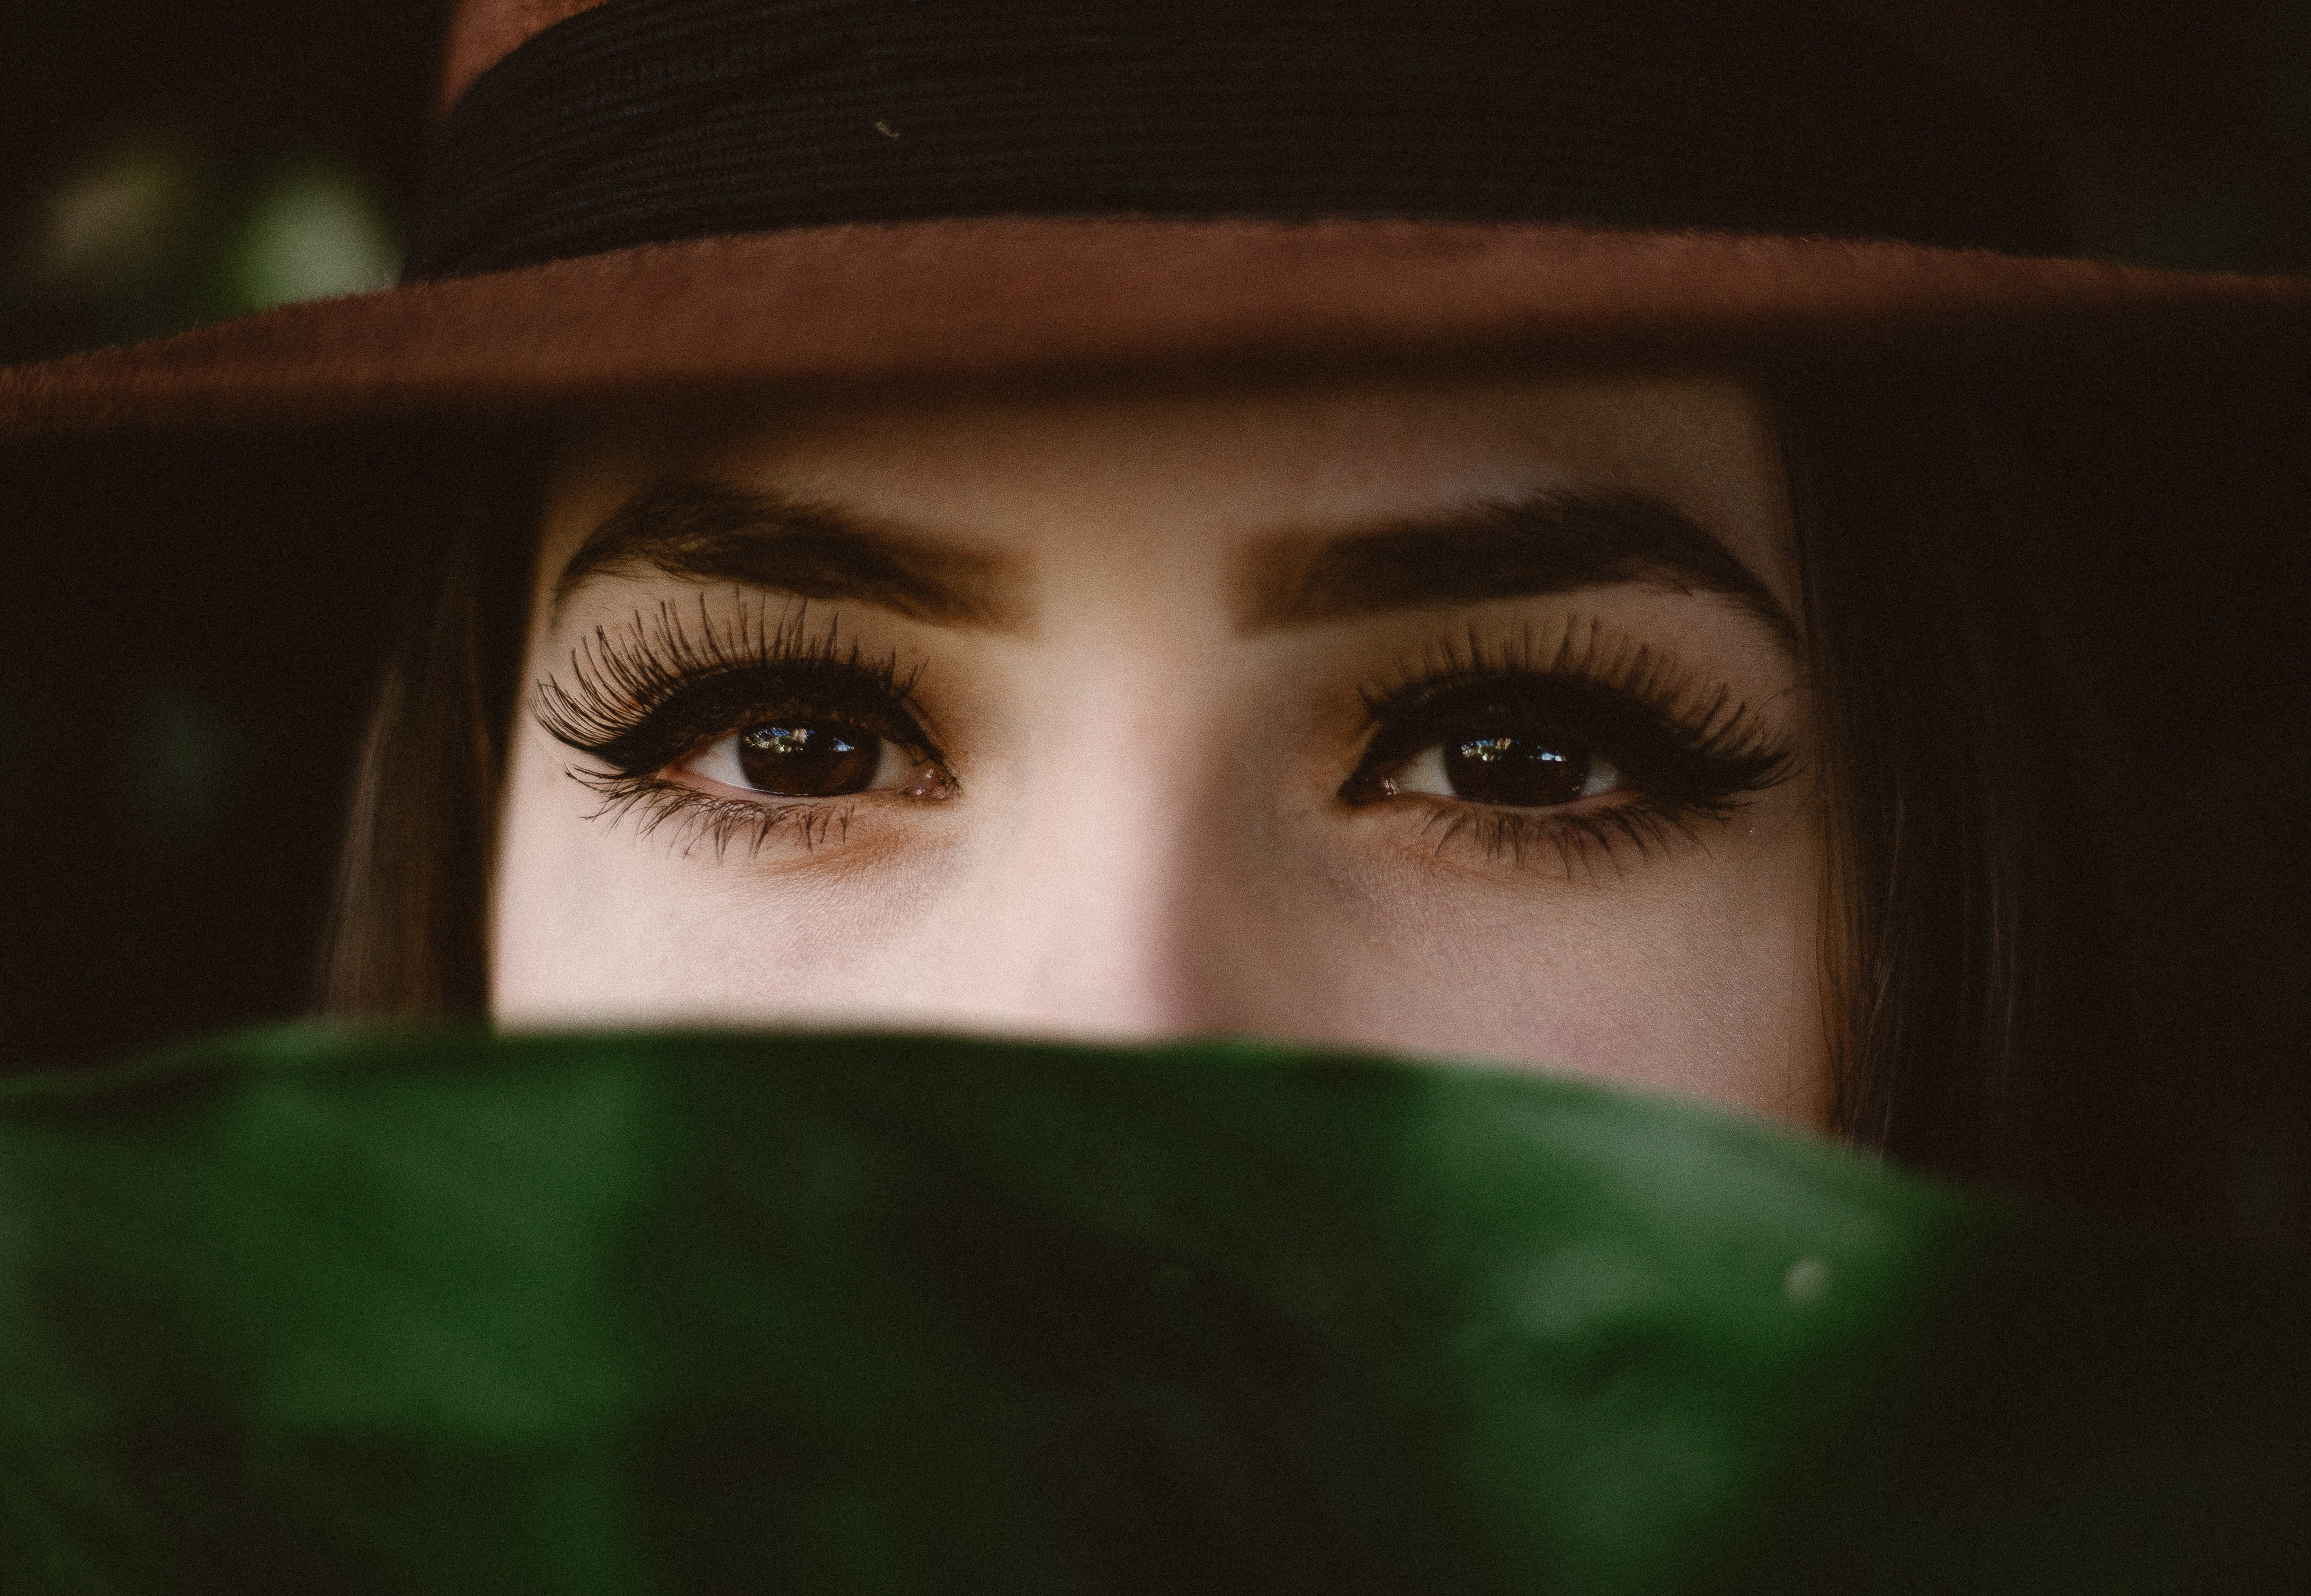 It is possible that eyelash extensions/strips could cause future eye problems? (Part 1 of 3)